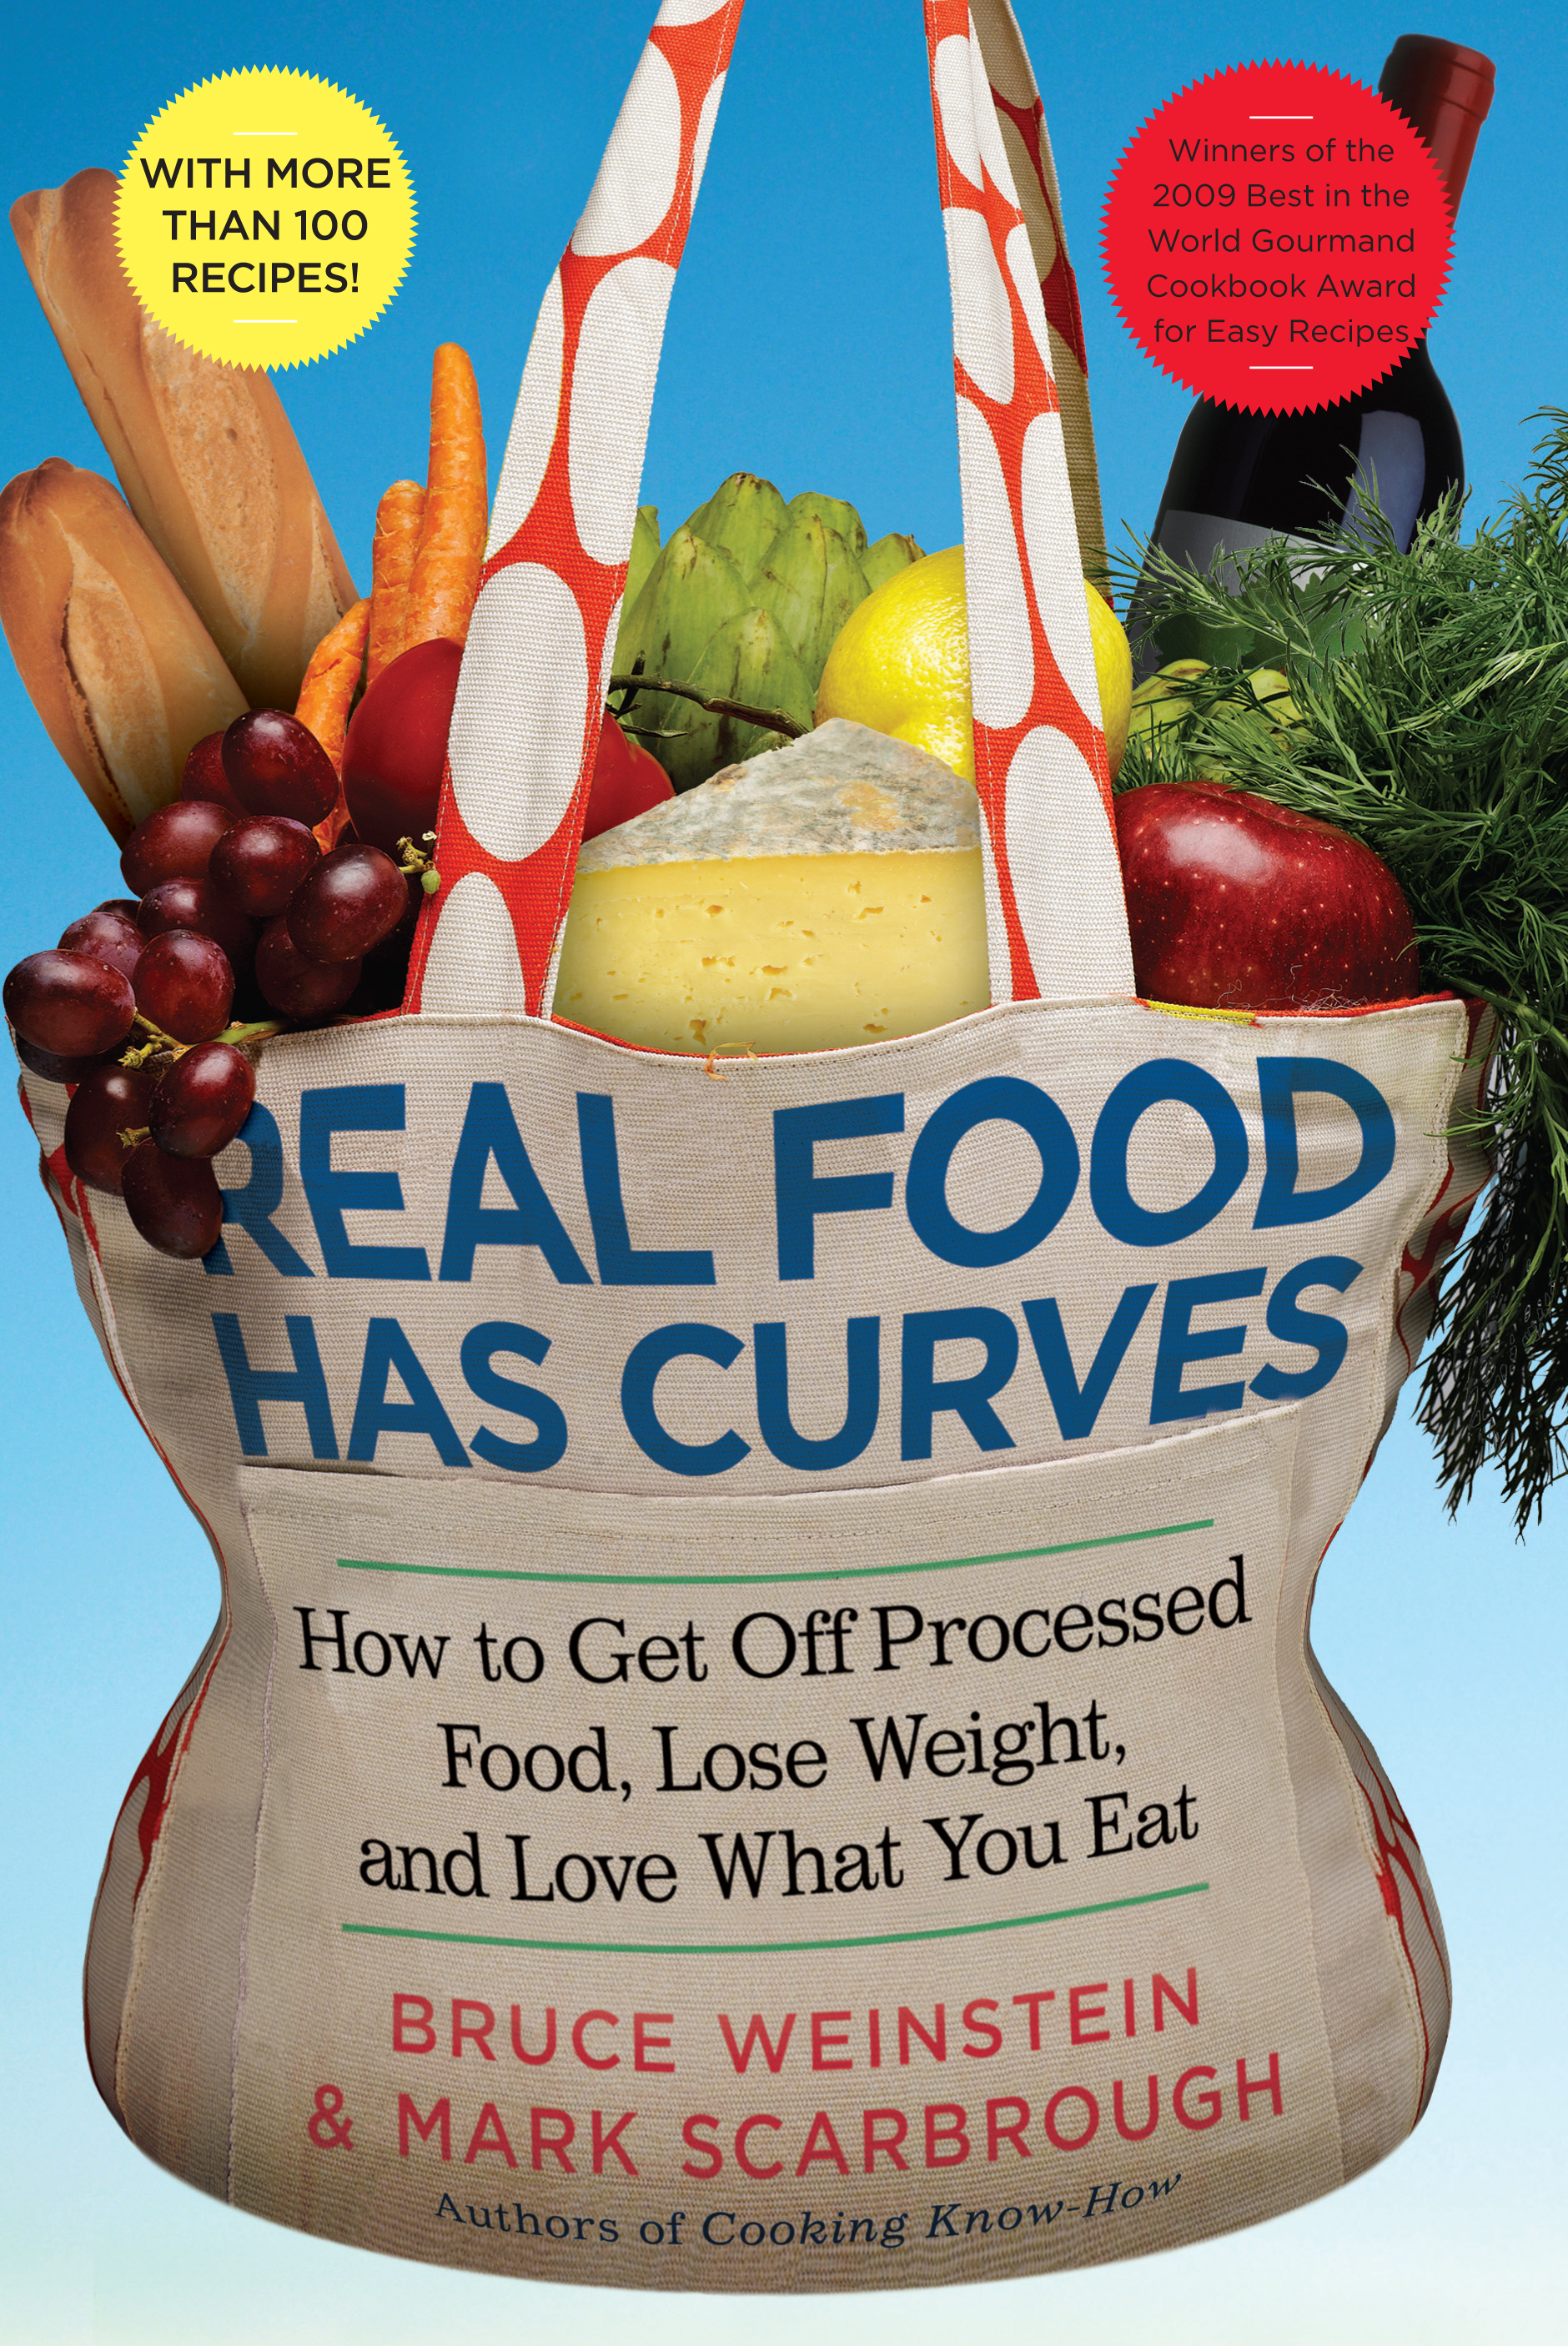 Real food has curves book by bruce weinstein mark scarbrough cvr9781439160381 9781439160381 hr real food has curves forumfinder Choice Image